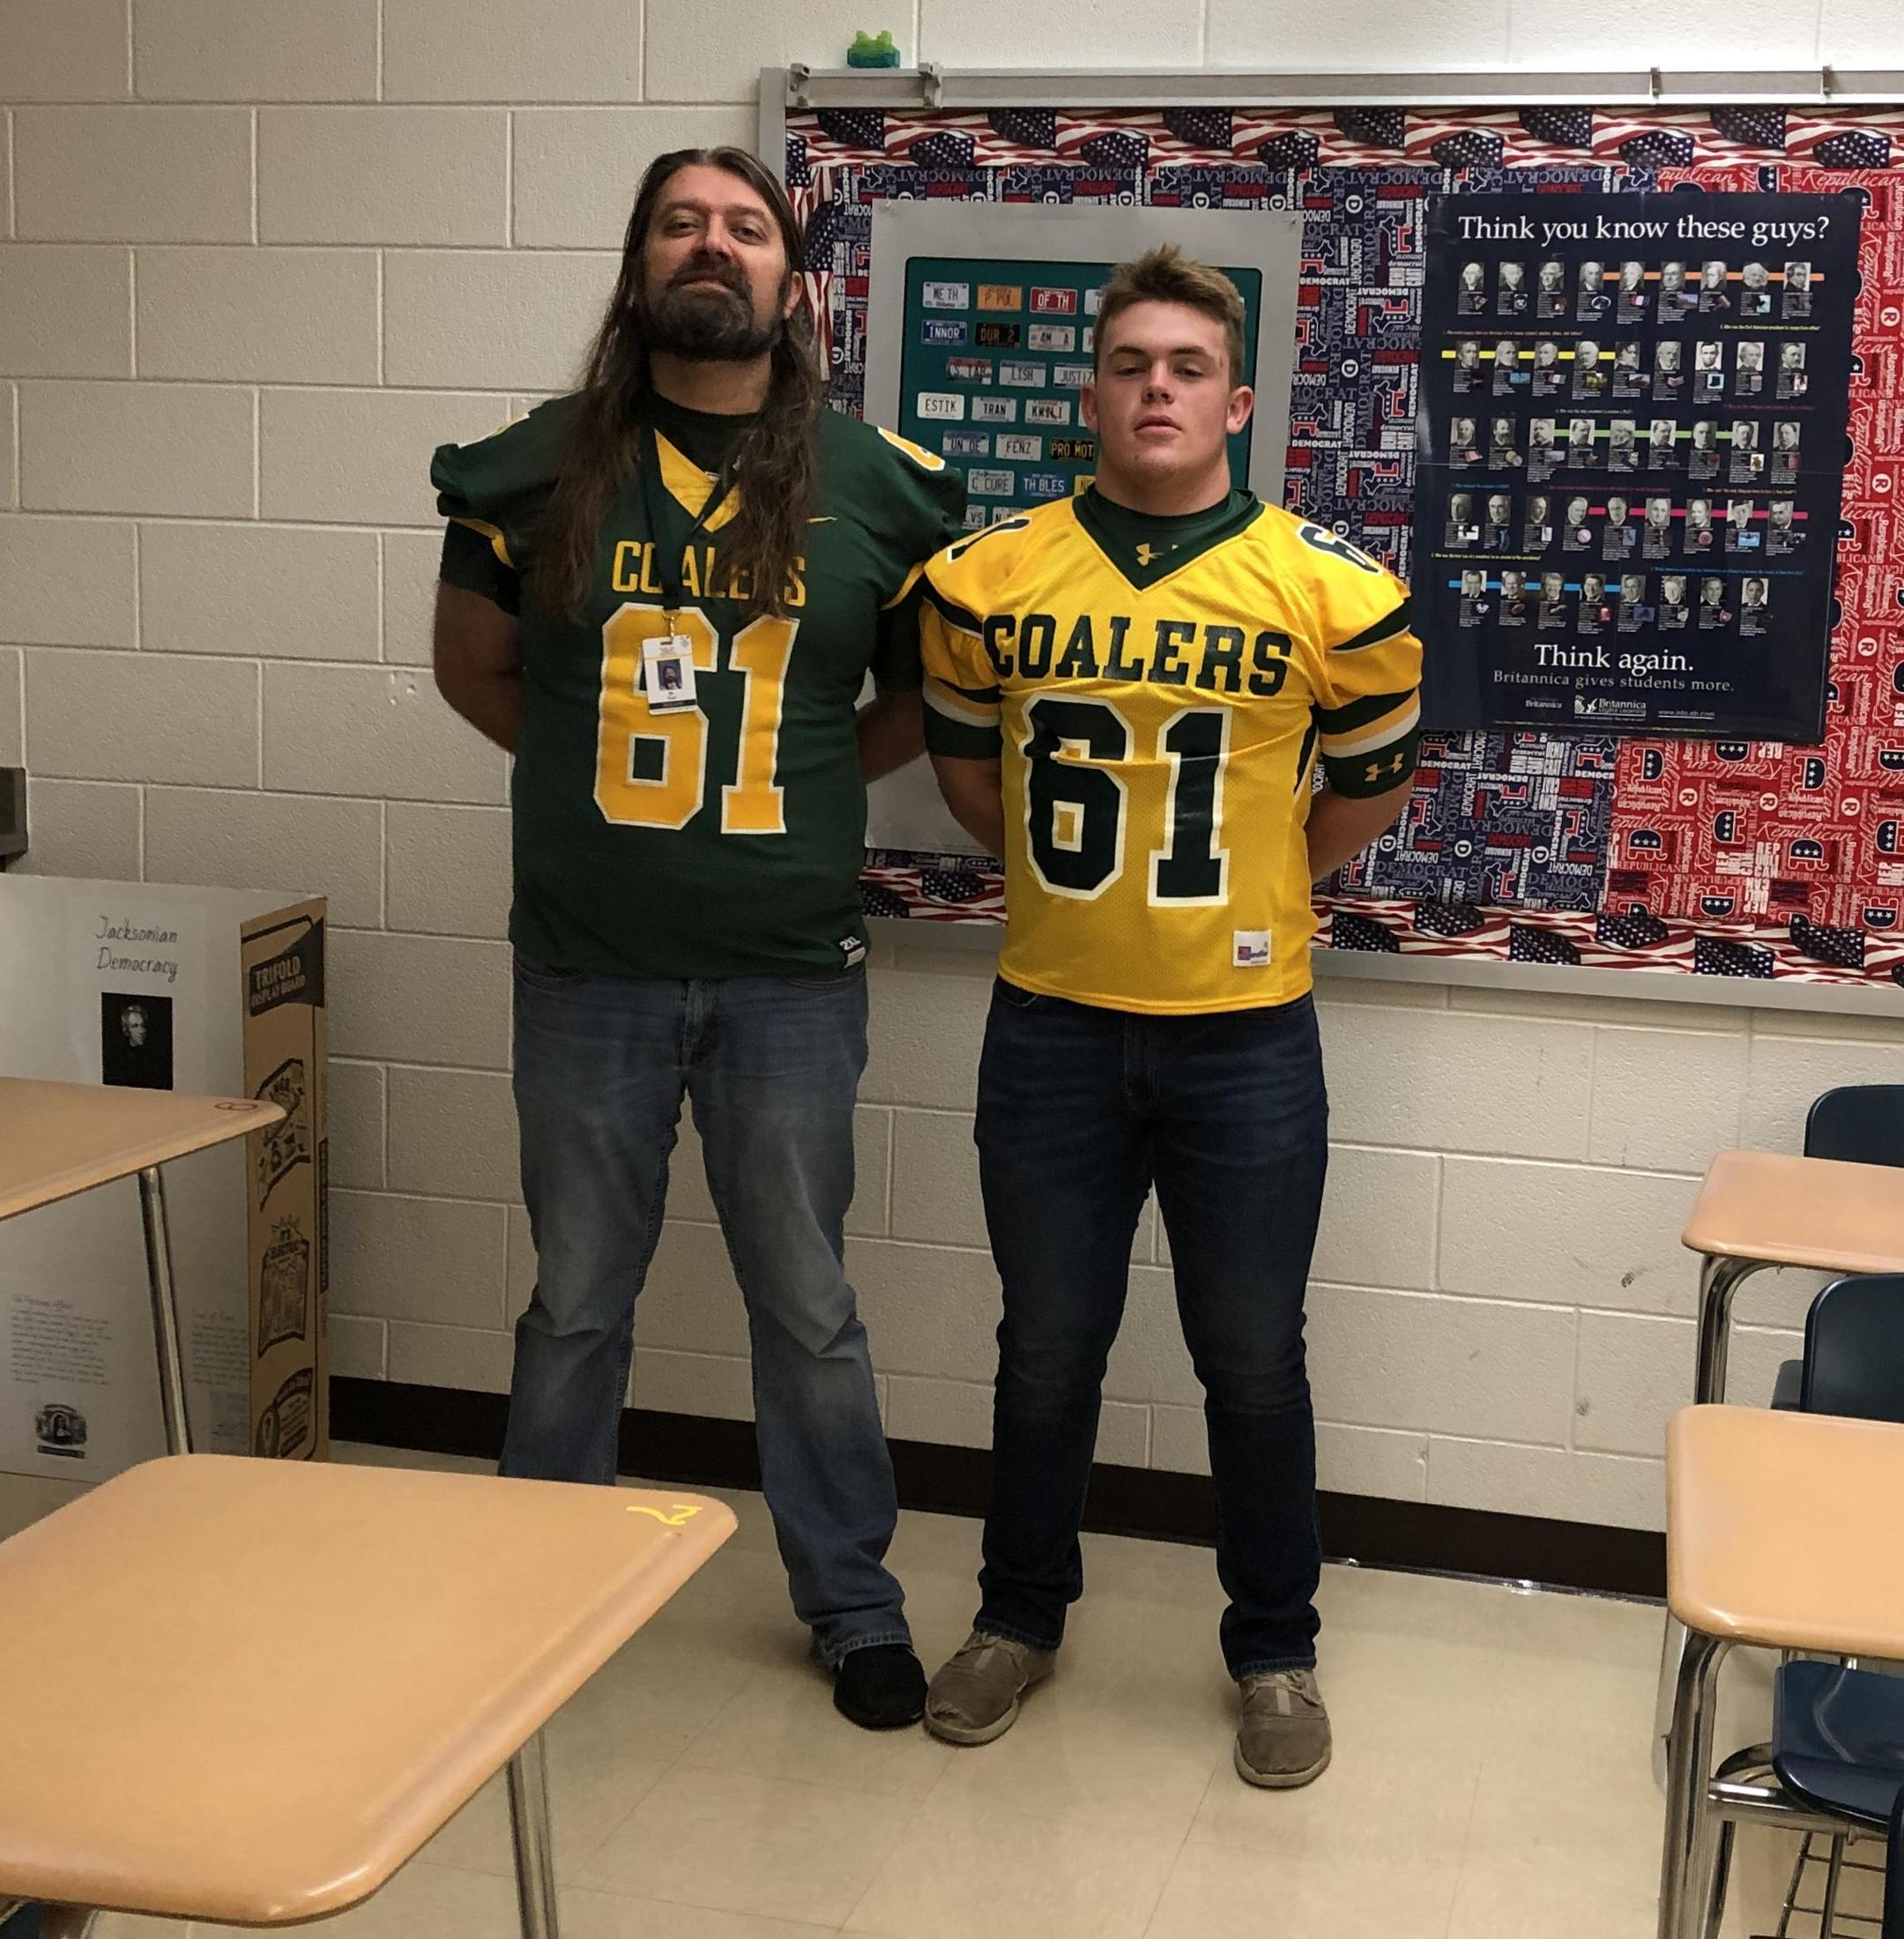 mr. baer with a football player. they are wearing the same coaler jersey.